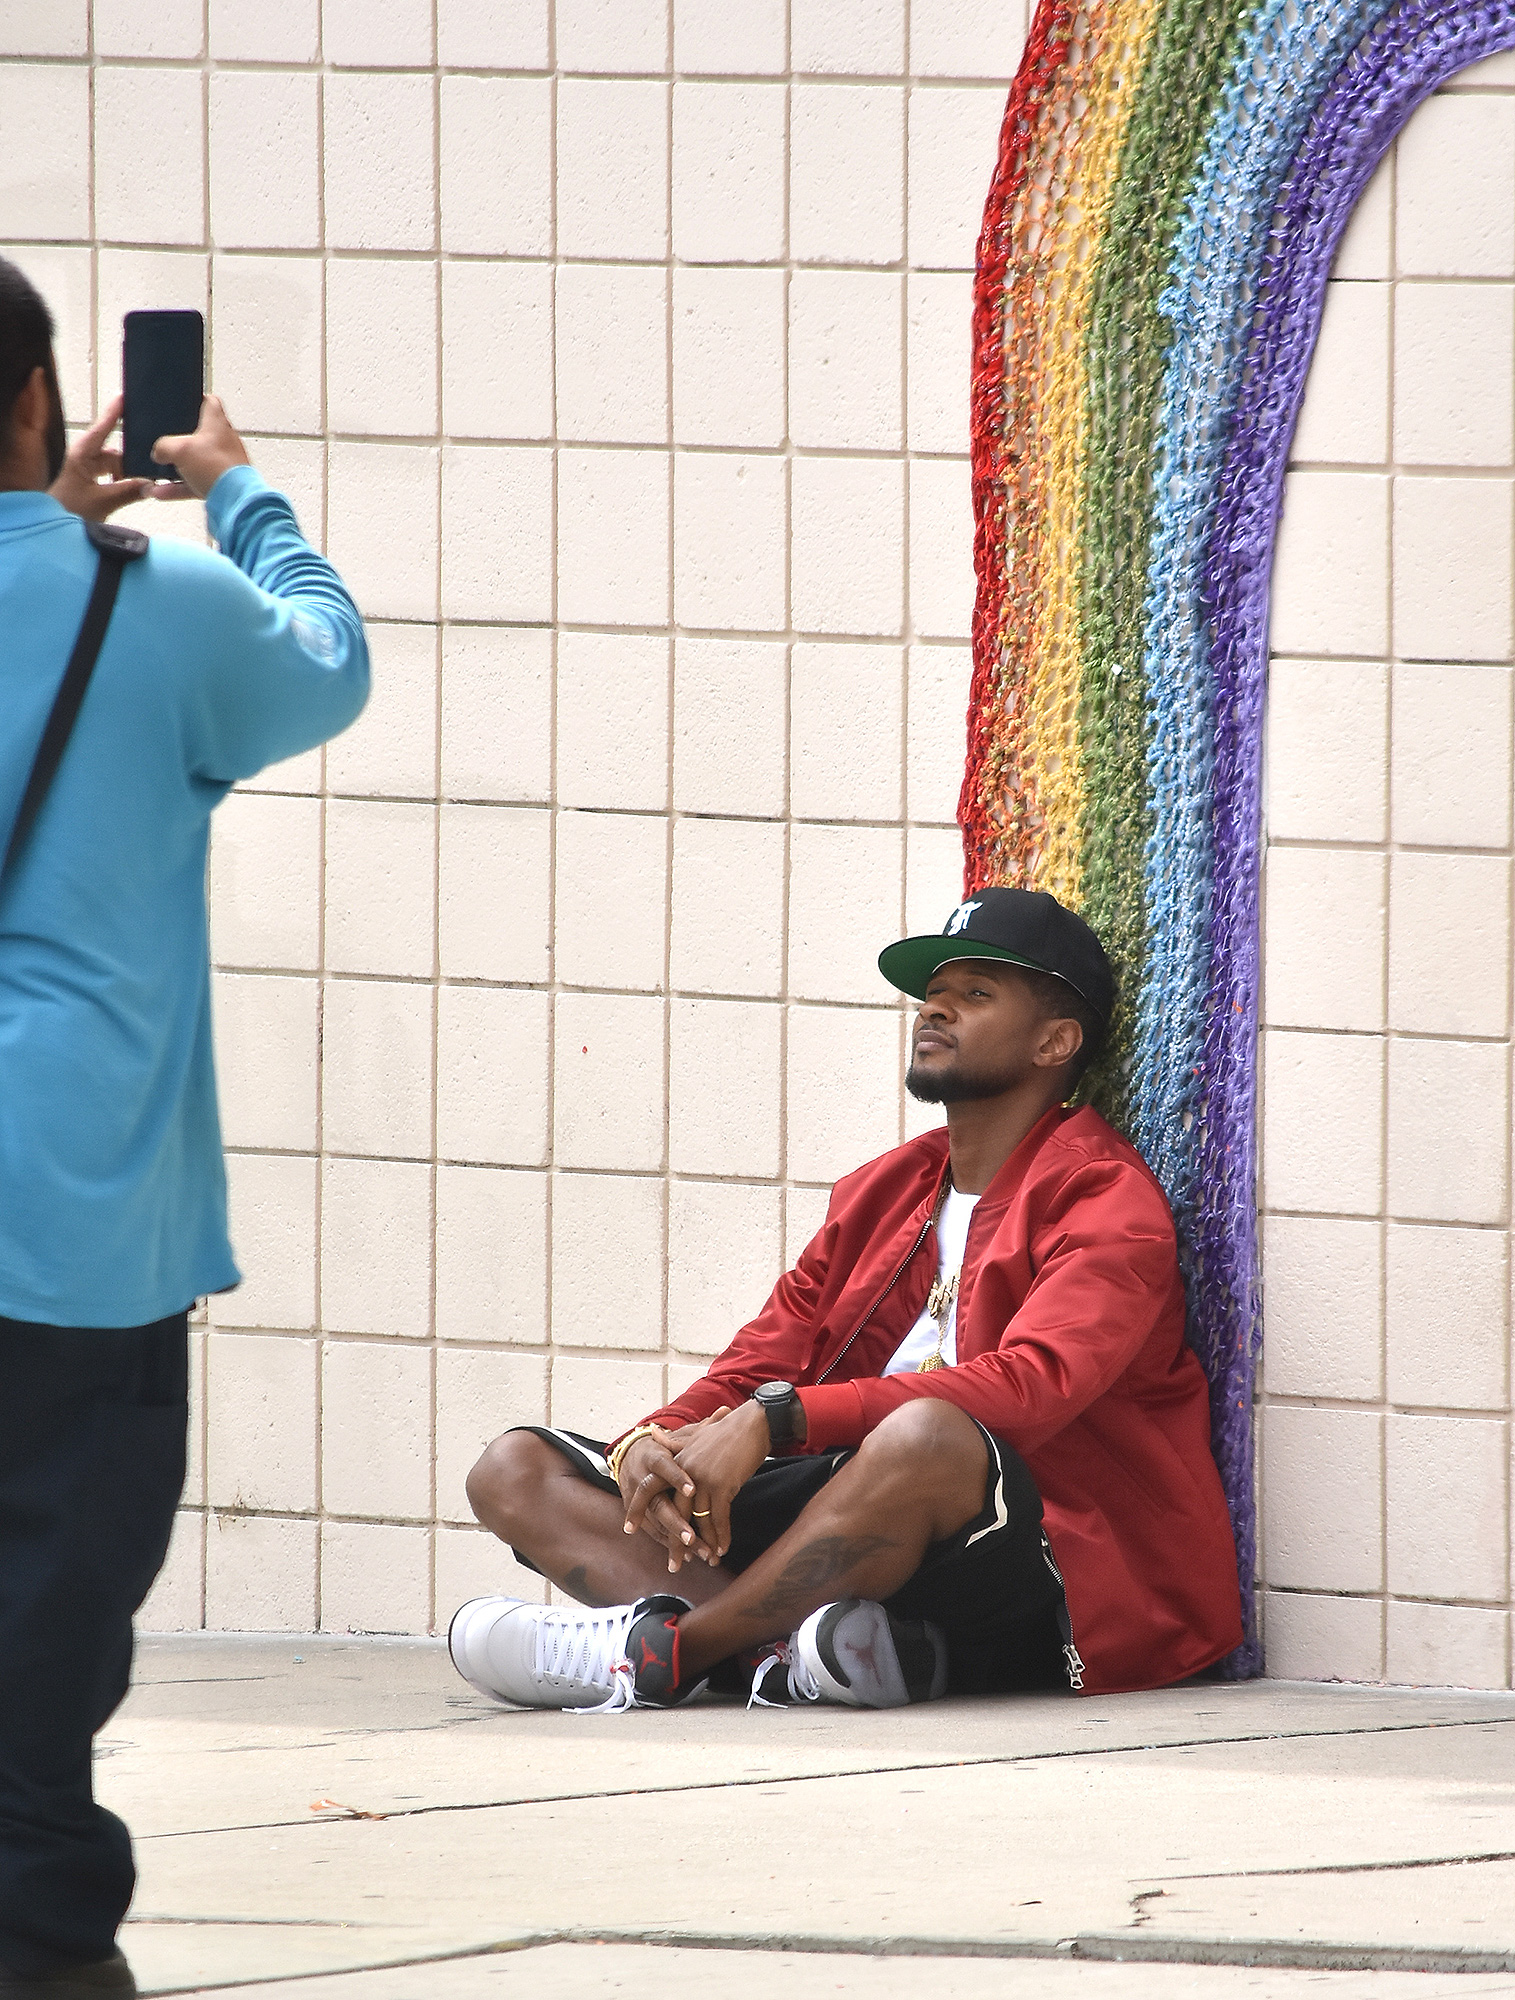 Usher Poses for Photos Under a Rainbow Designed Mural